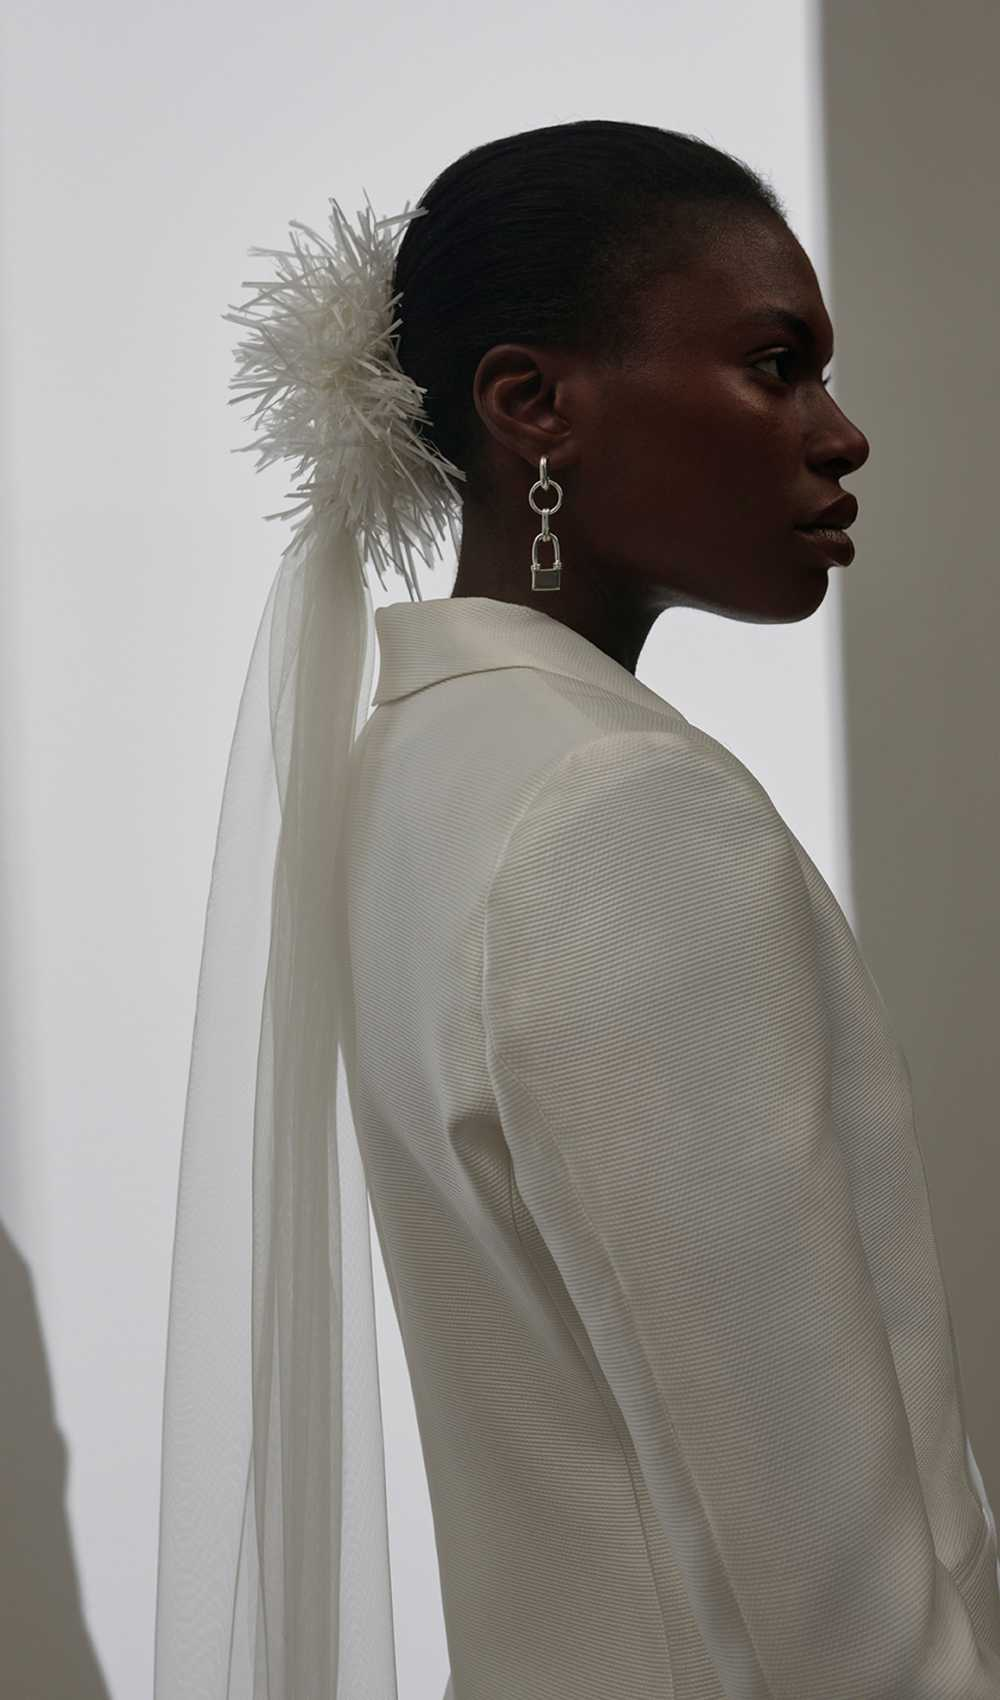 Scrunchy with white tinsel and tulle veil